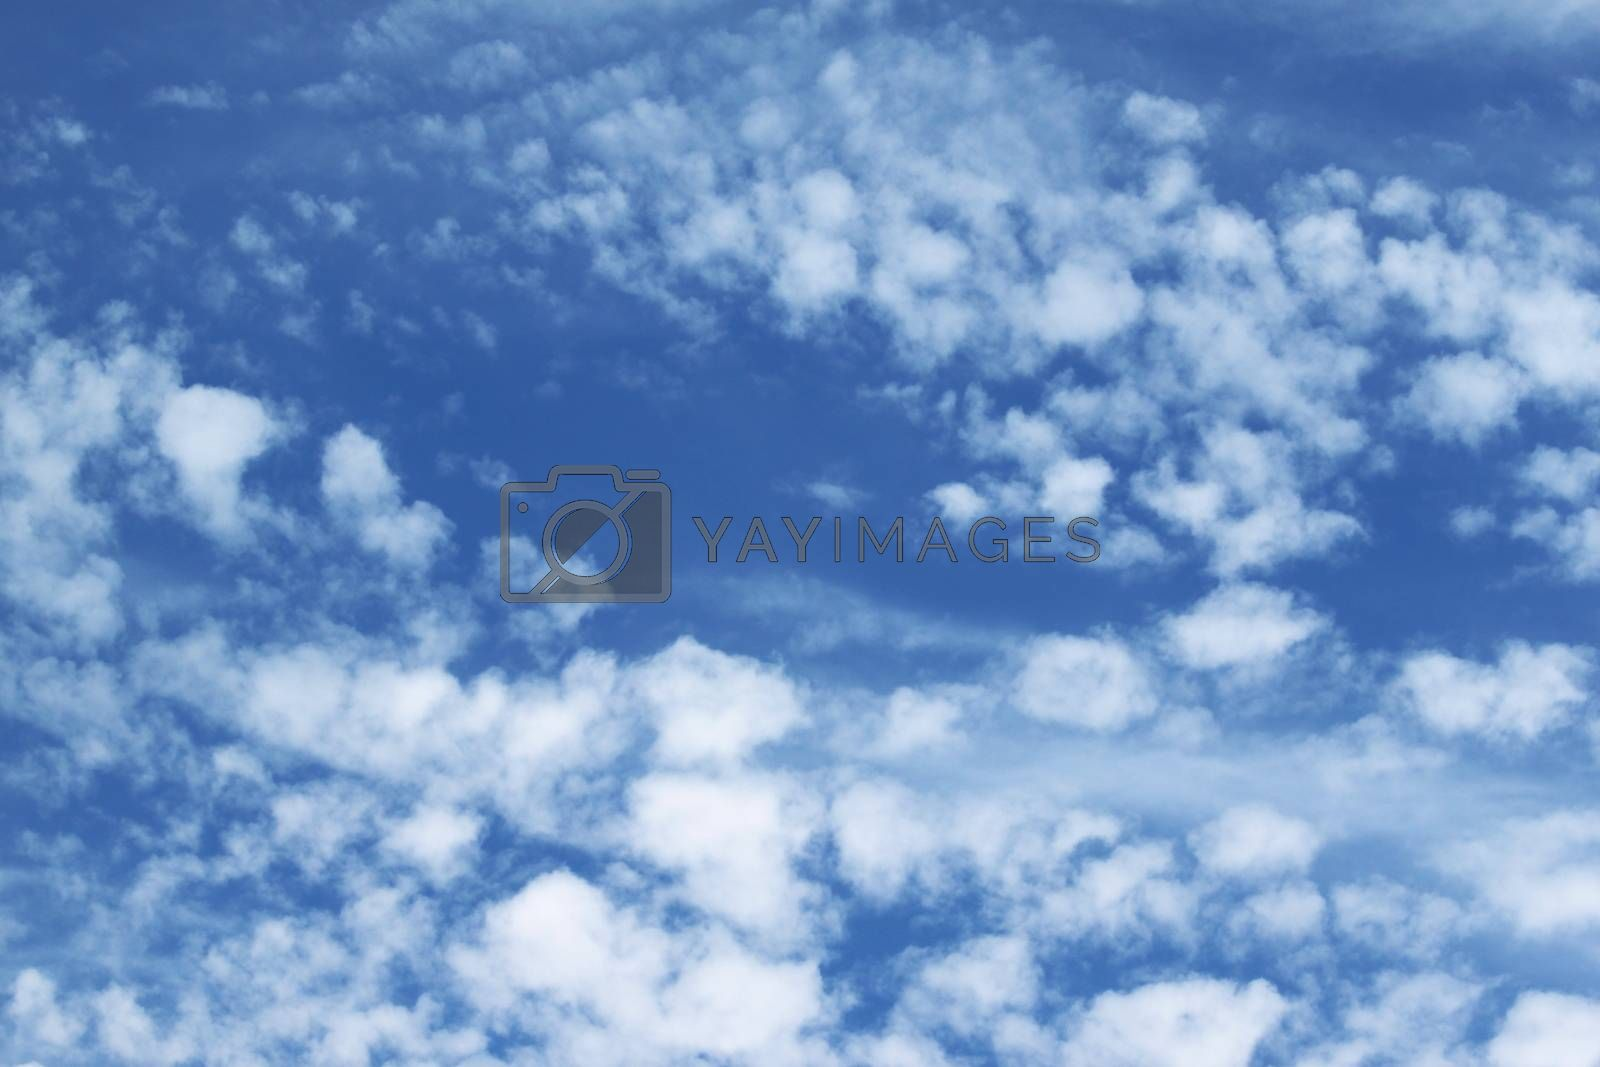 Beautiful blue and white sky with clouds in it.